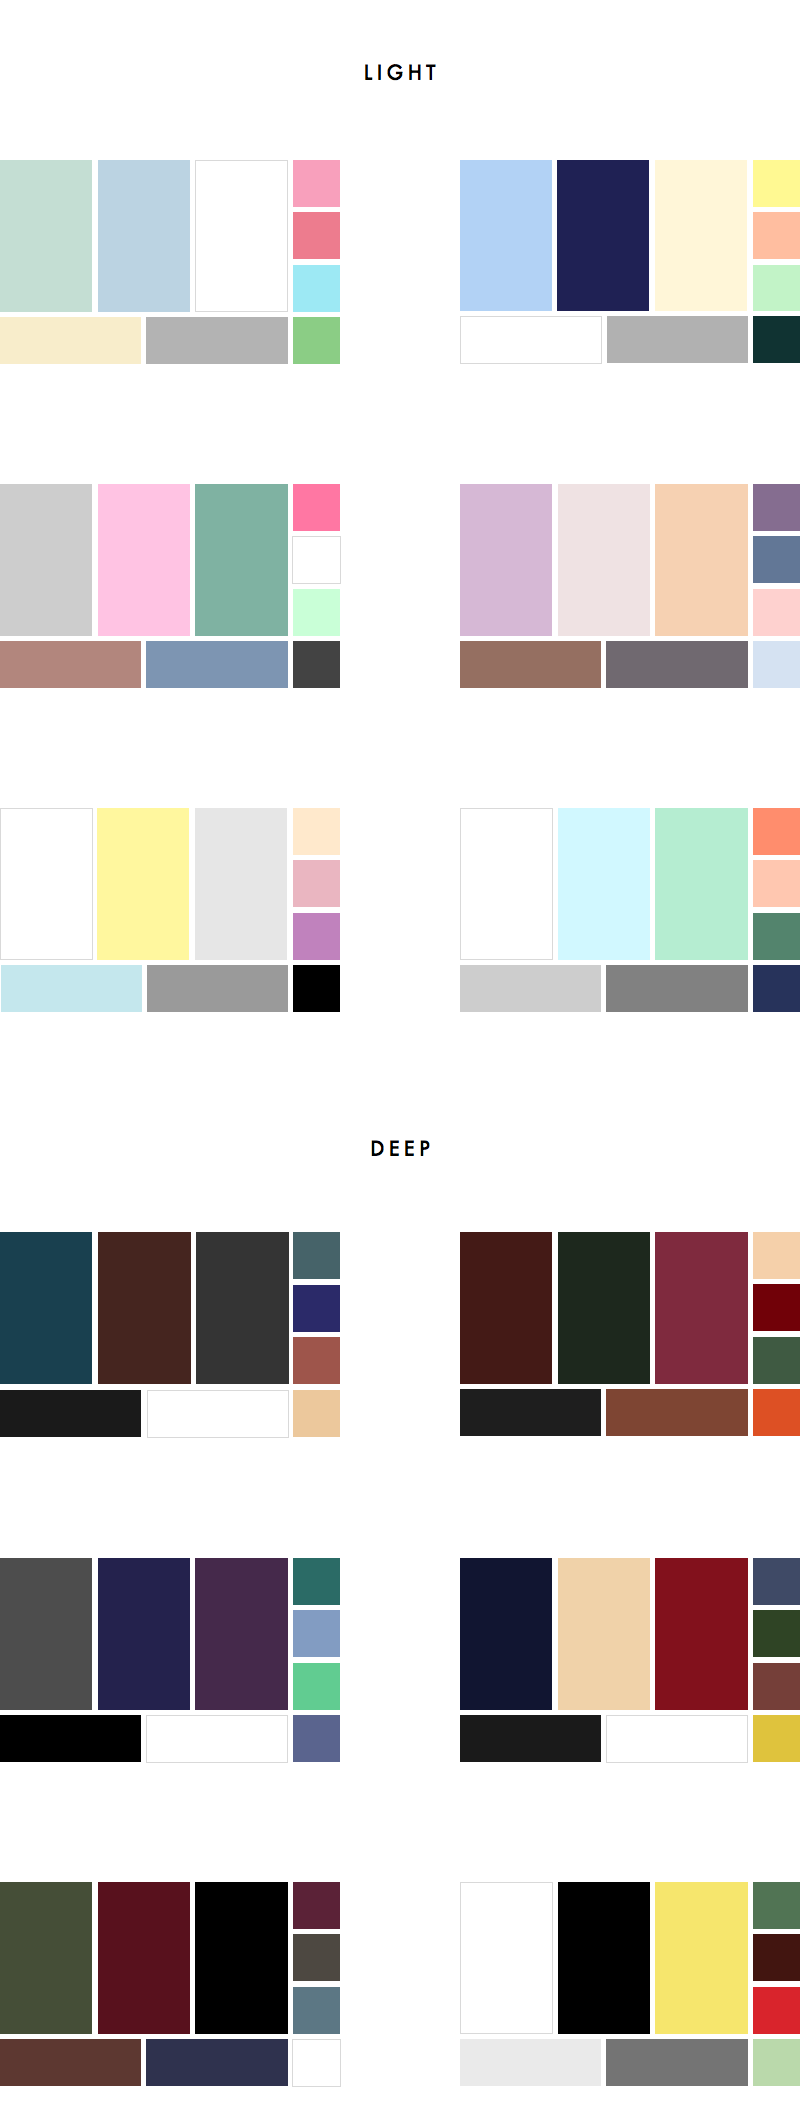 36 Colour Palettes for your Wardrobe Part III: Light vs Deep